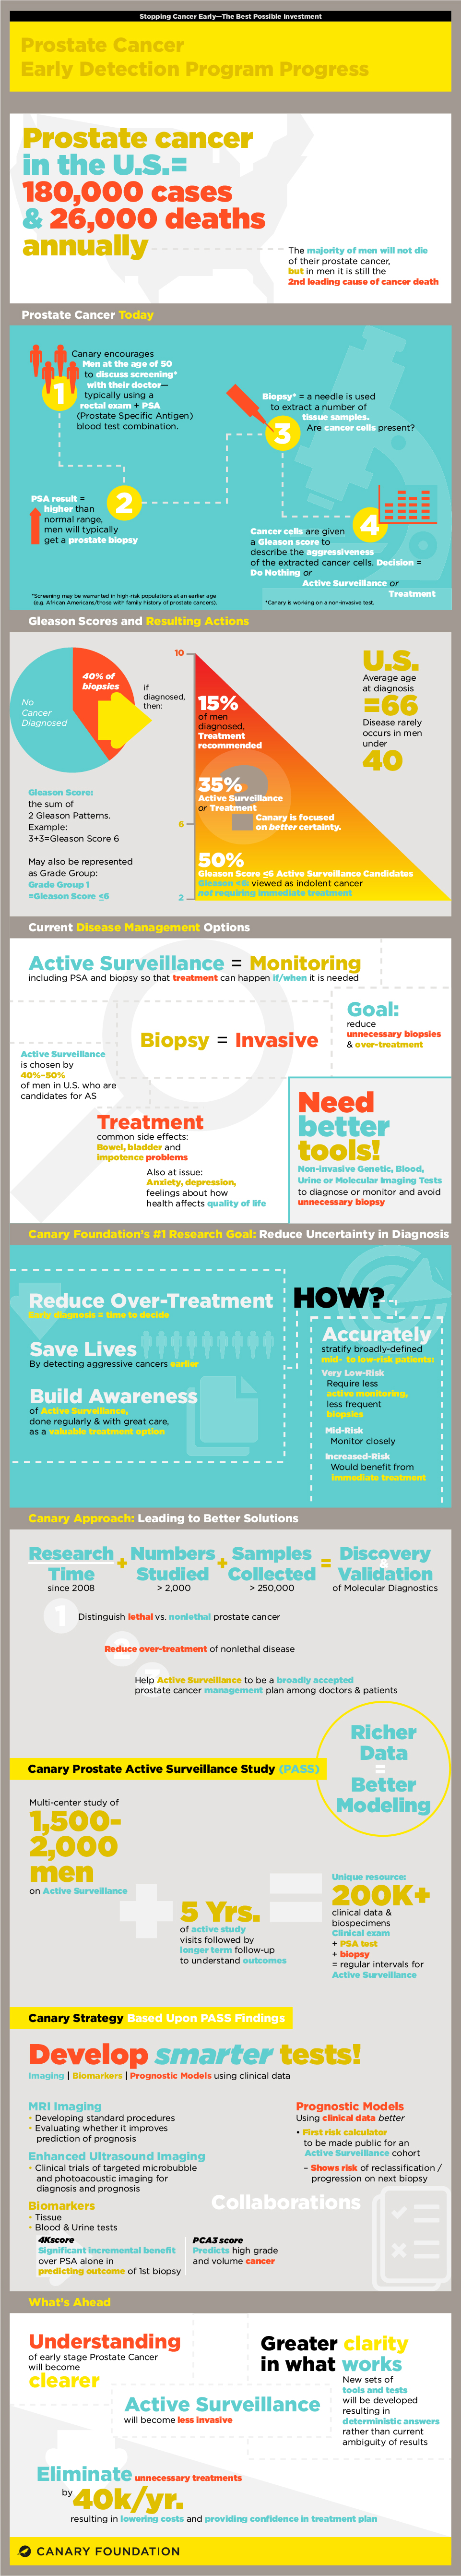 Prostate Team Progress Infographic  explains the current state of Prostate Cancer outcomes, diagnosis, and treatment and Canary Foundation's unique approach